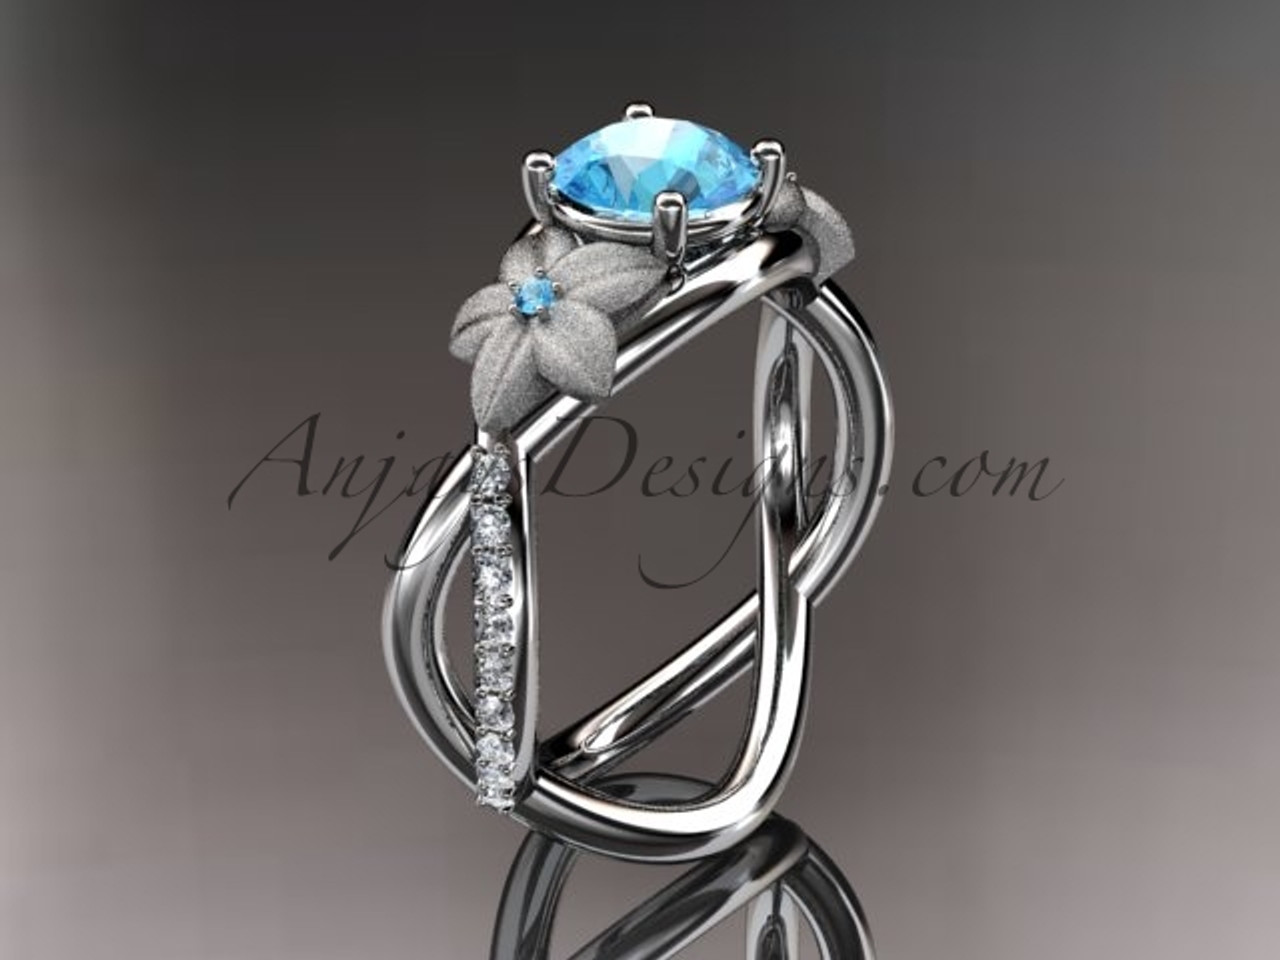 ring available shaped wedding slp cubic zirconia all birthstone colors silver december simulated blue halo heart amazon rings sterling promise gemstone com